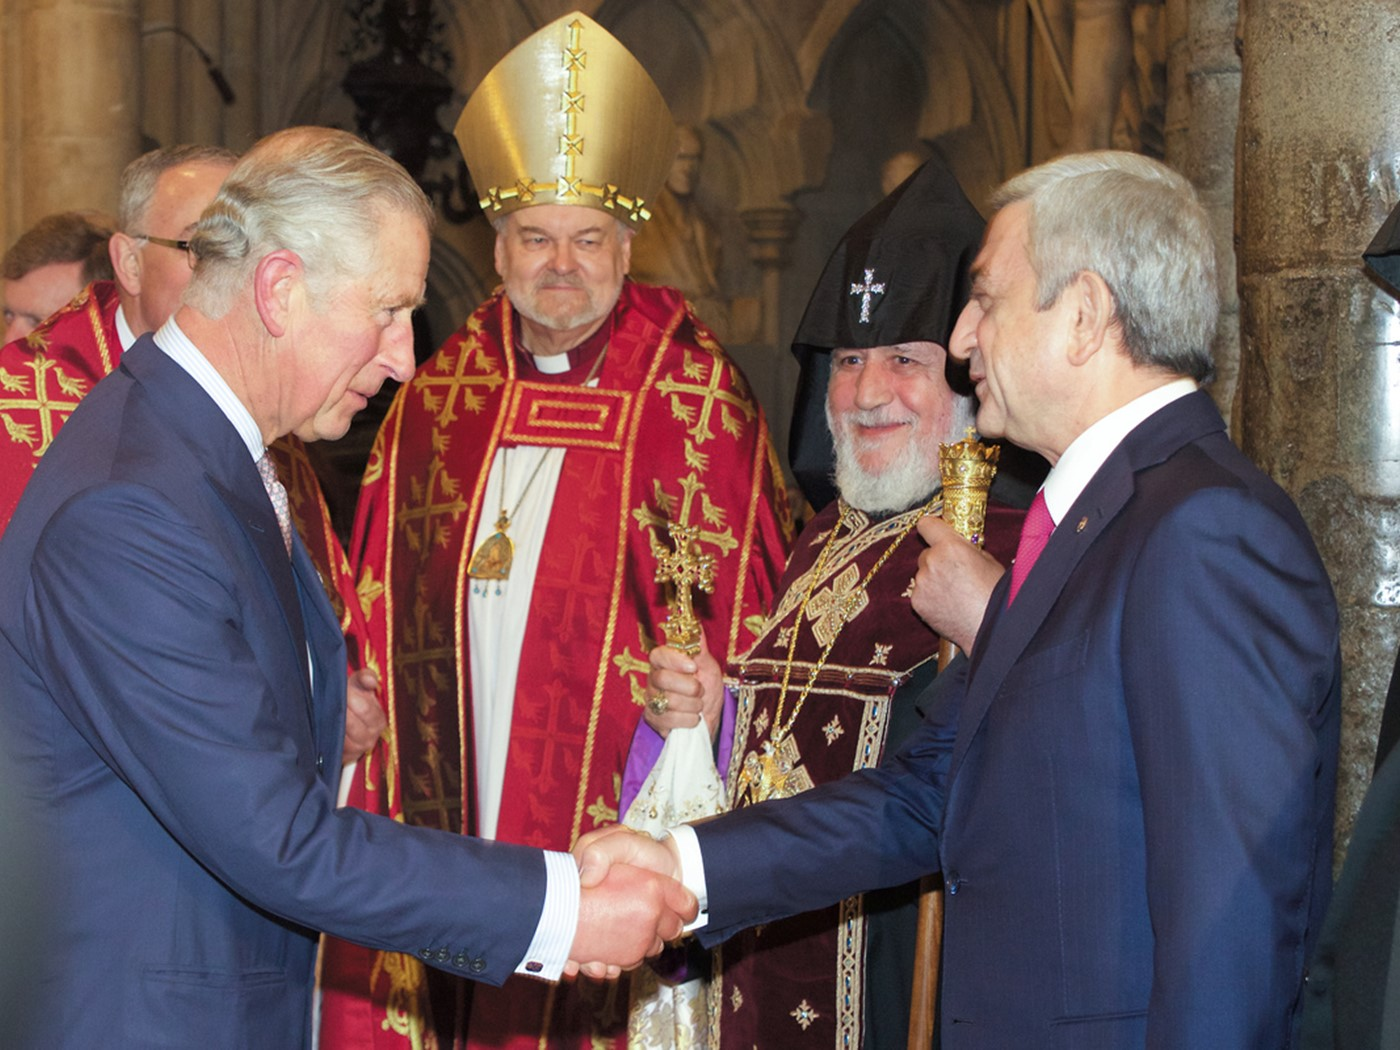 HRH The Prince of Wales, The Bishop of London; His Holiness Karekin II, Supreme Patriarch and Catholicos of All Armenians; and the President of the Republic of Armenia